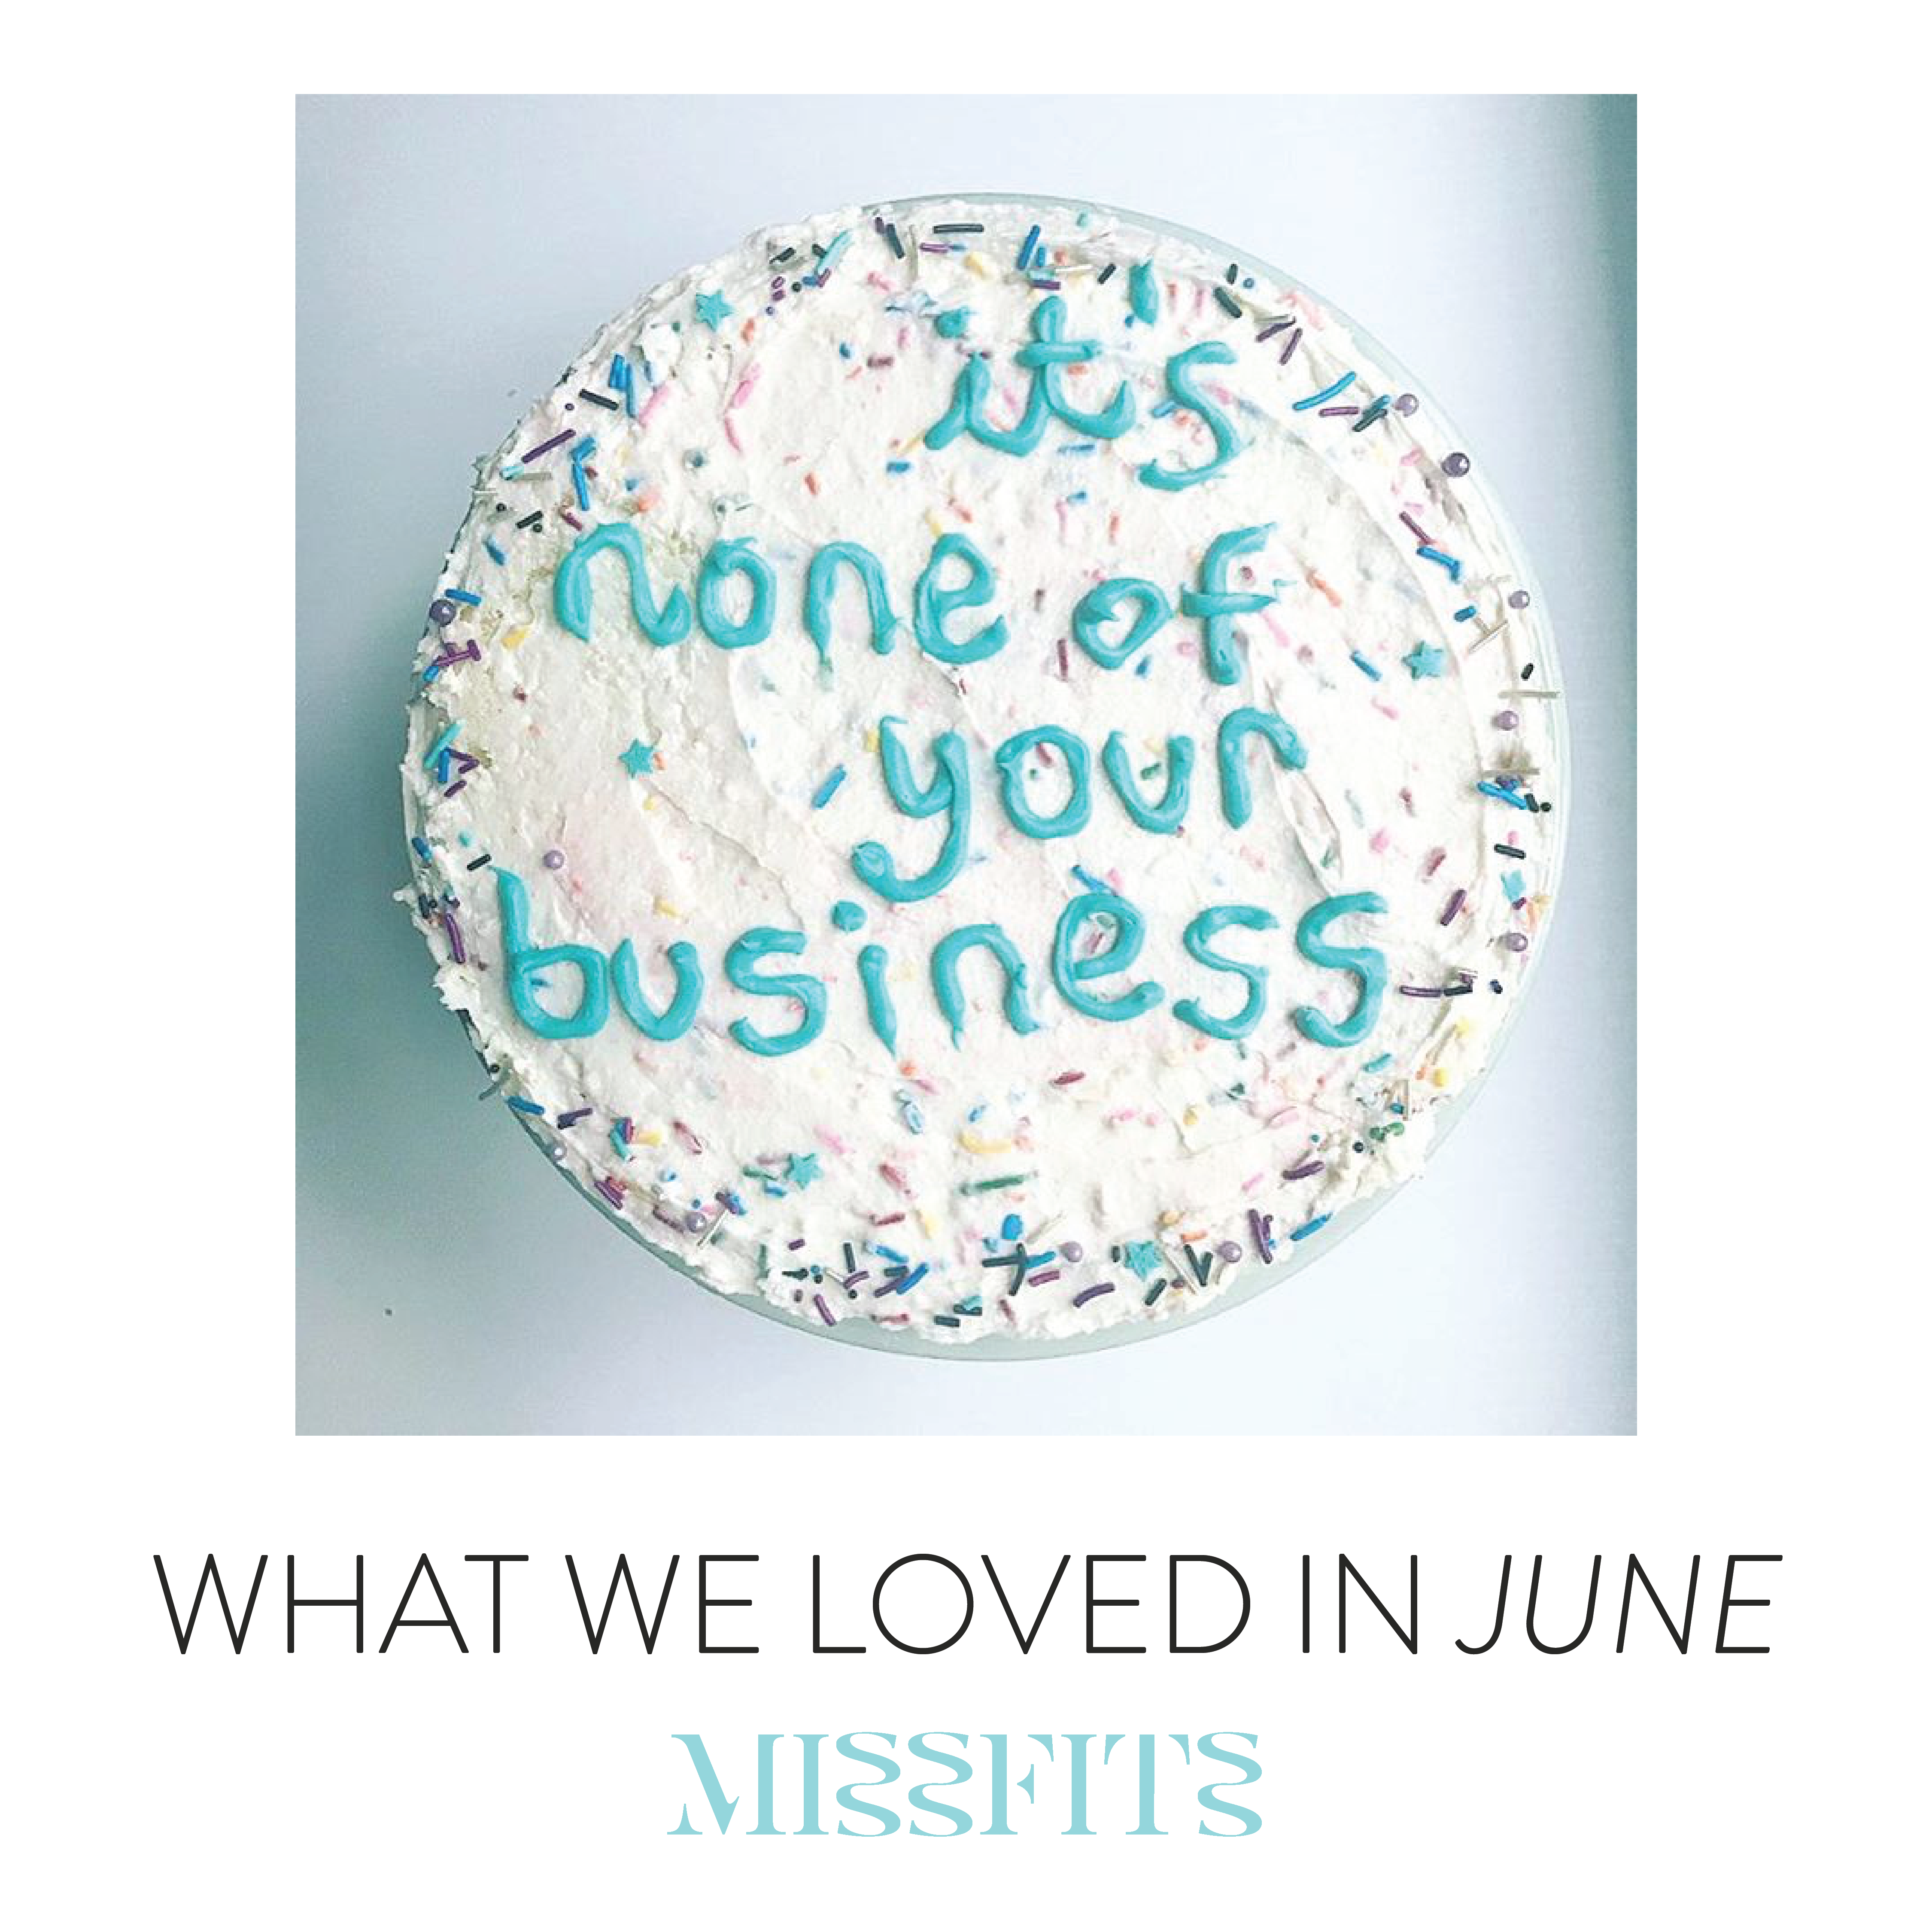 A Roundup of What We Loved in June